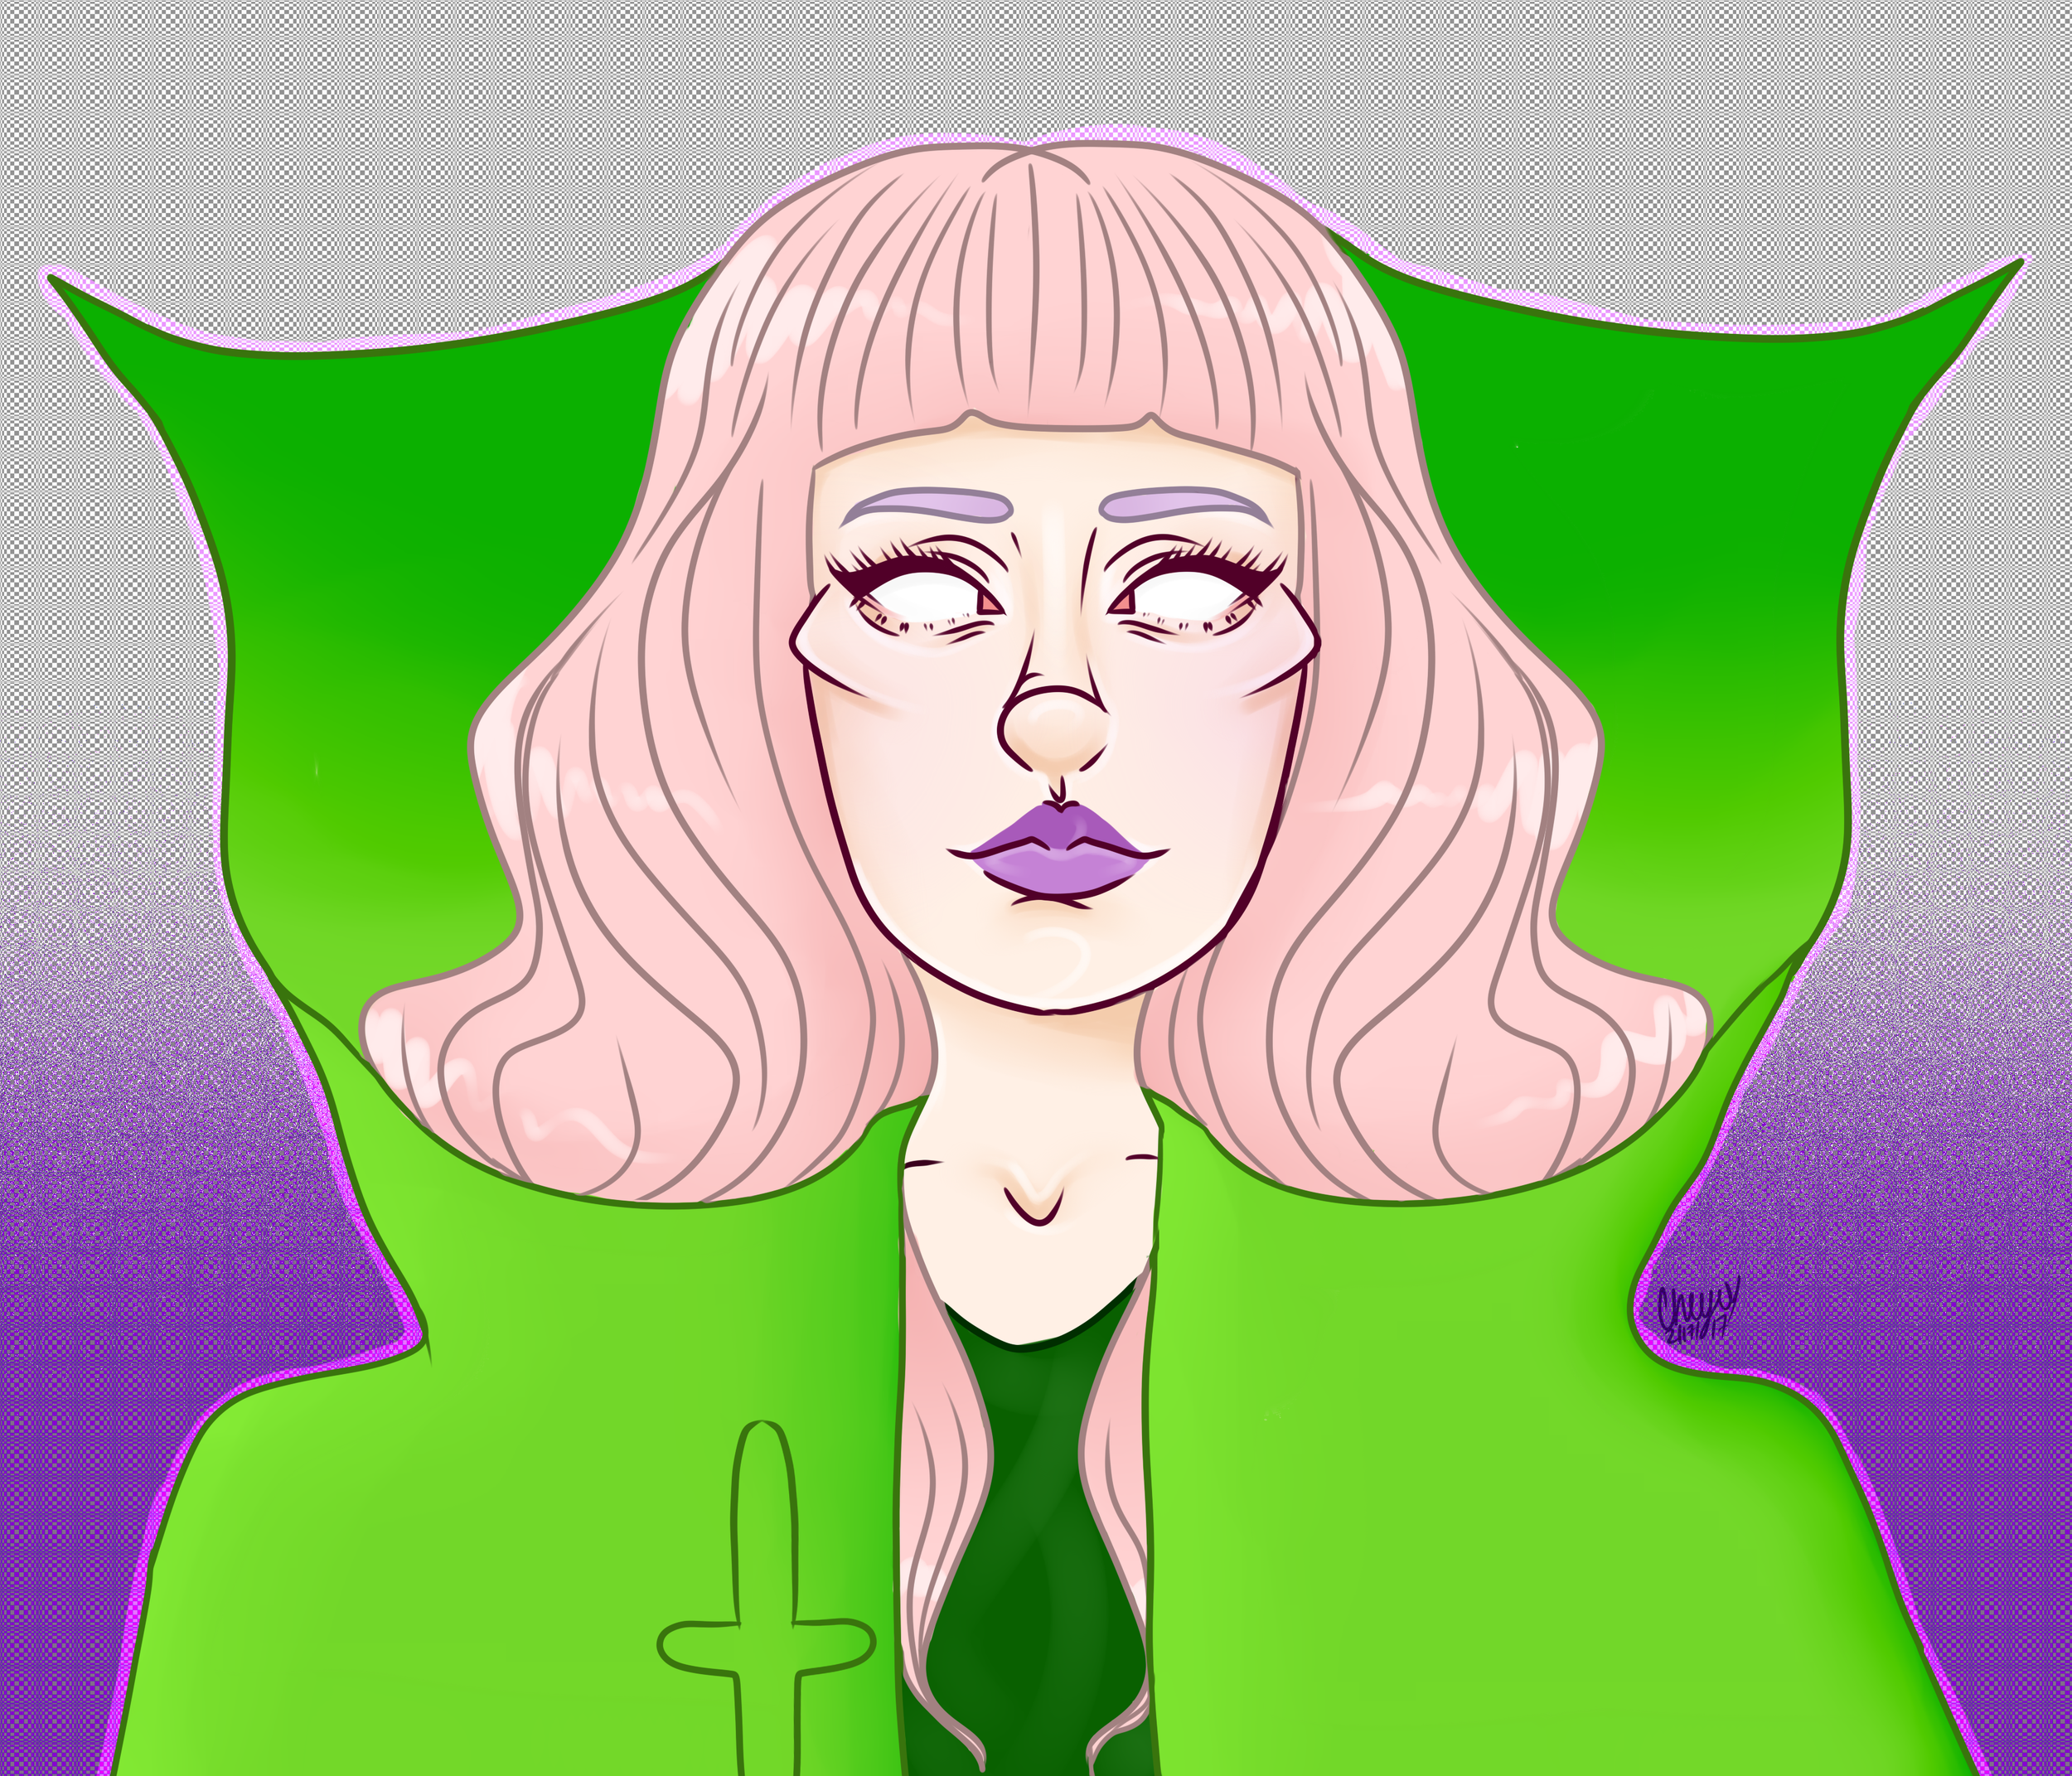 belladonna-of-sadness-but-like-green-isnt-a-sad-color-so-this-isnt-that-accurate.png